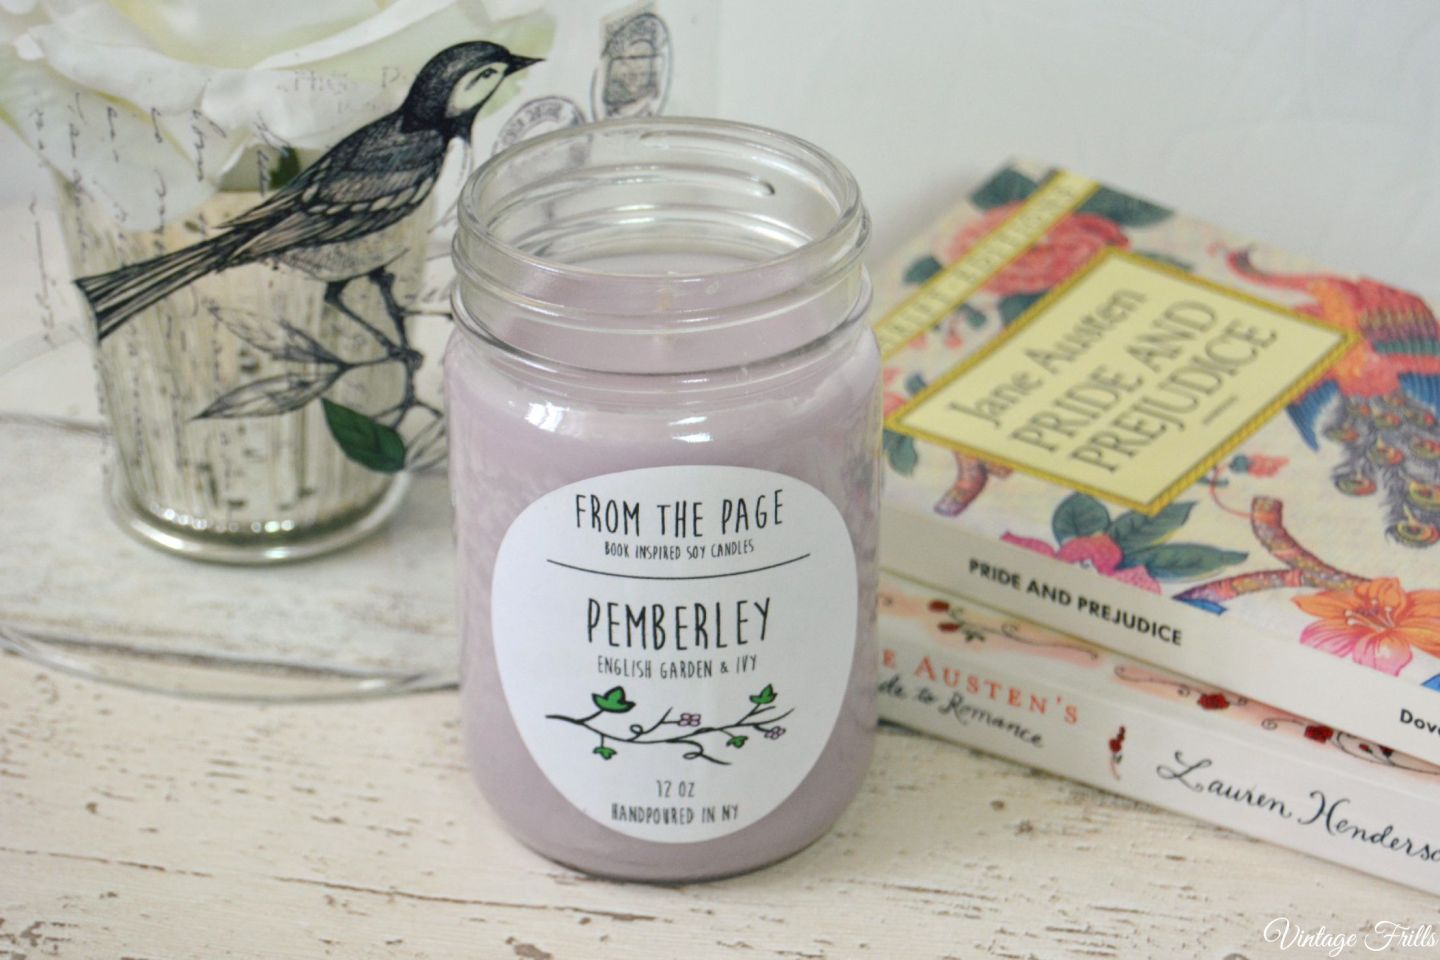 Pemberley Pride and Prejudice Candle  From the page  Uncommon Goods  Vintage Frills